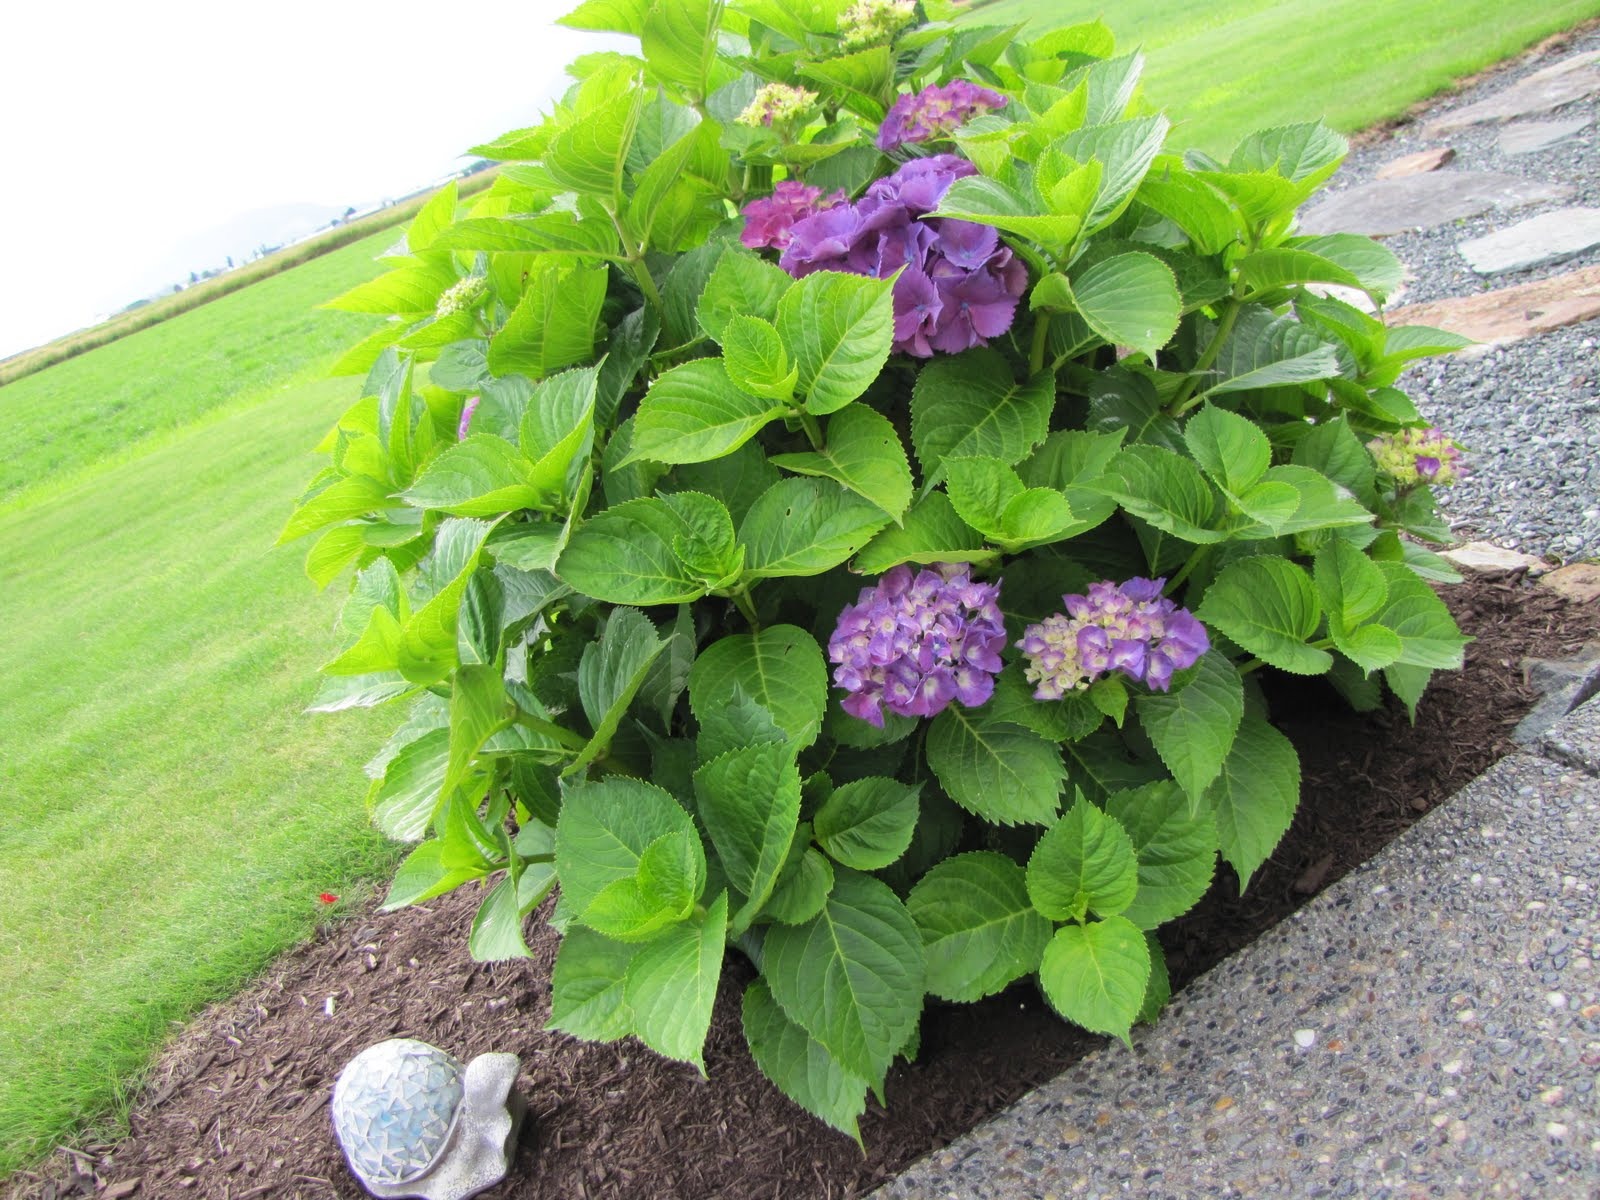 My front porch the hunt for hydrangeas my front porch the hunt for hydrangeas izmirmasajfo